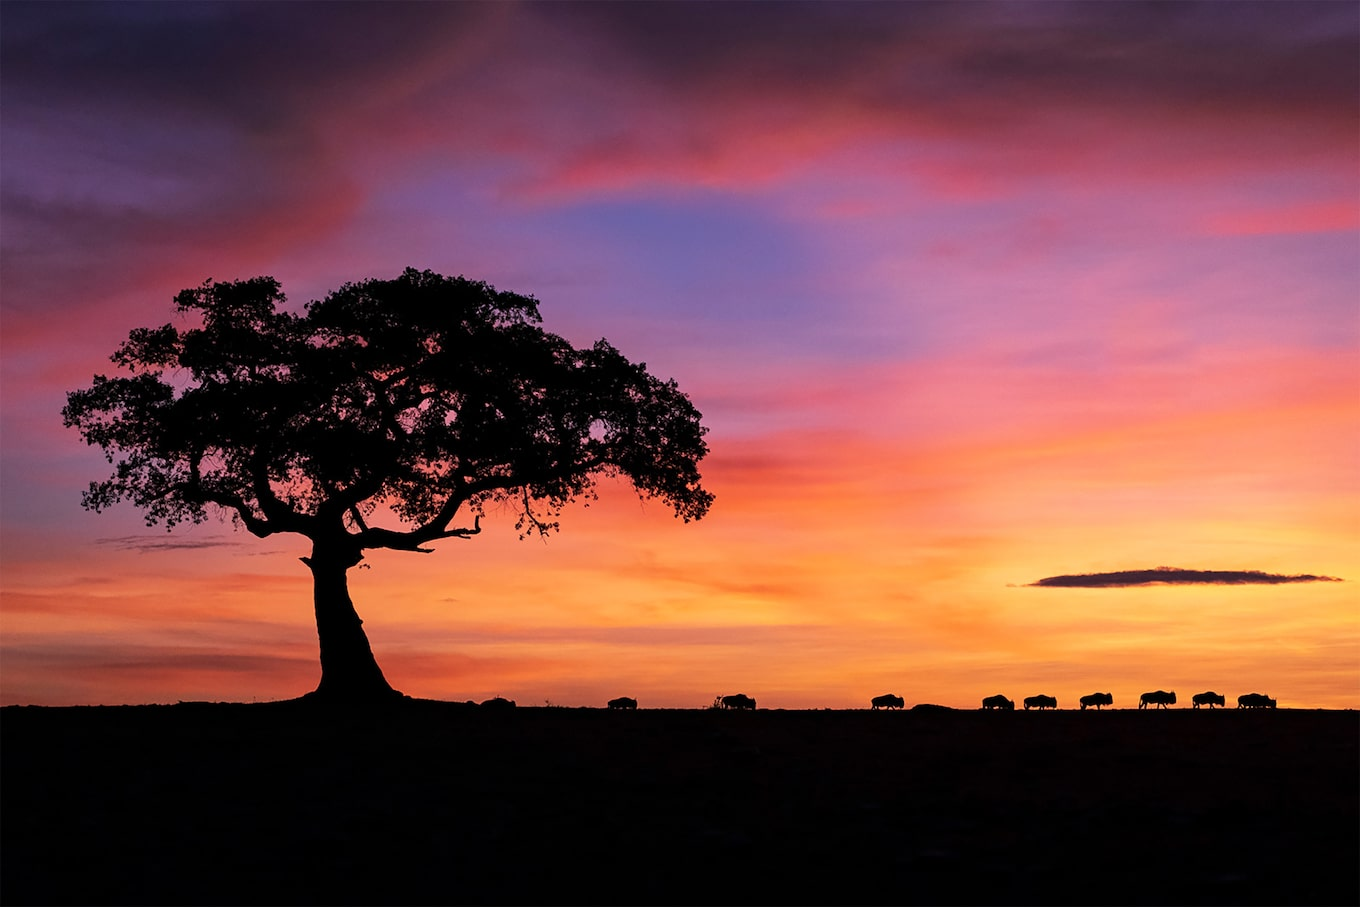 andreas hemb sony alpha 9 savannah landscape on a sunset with a tree